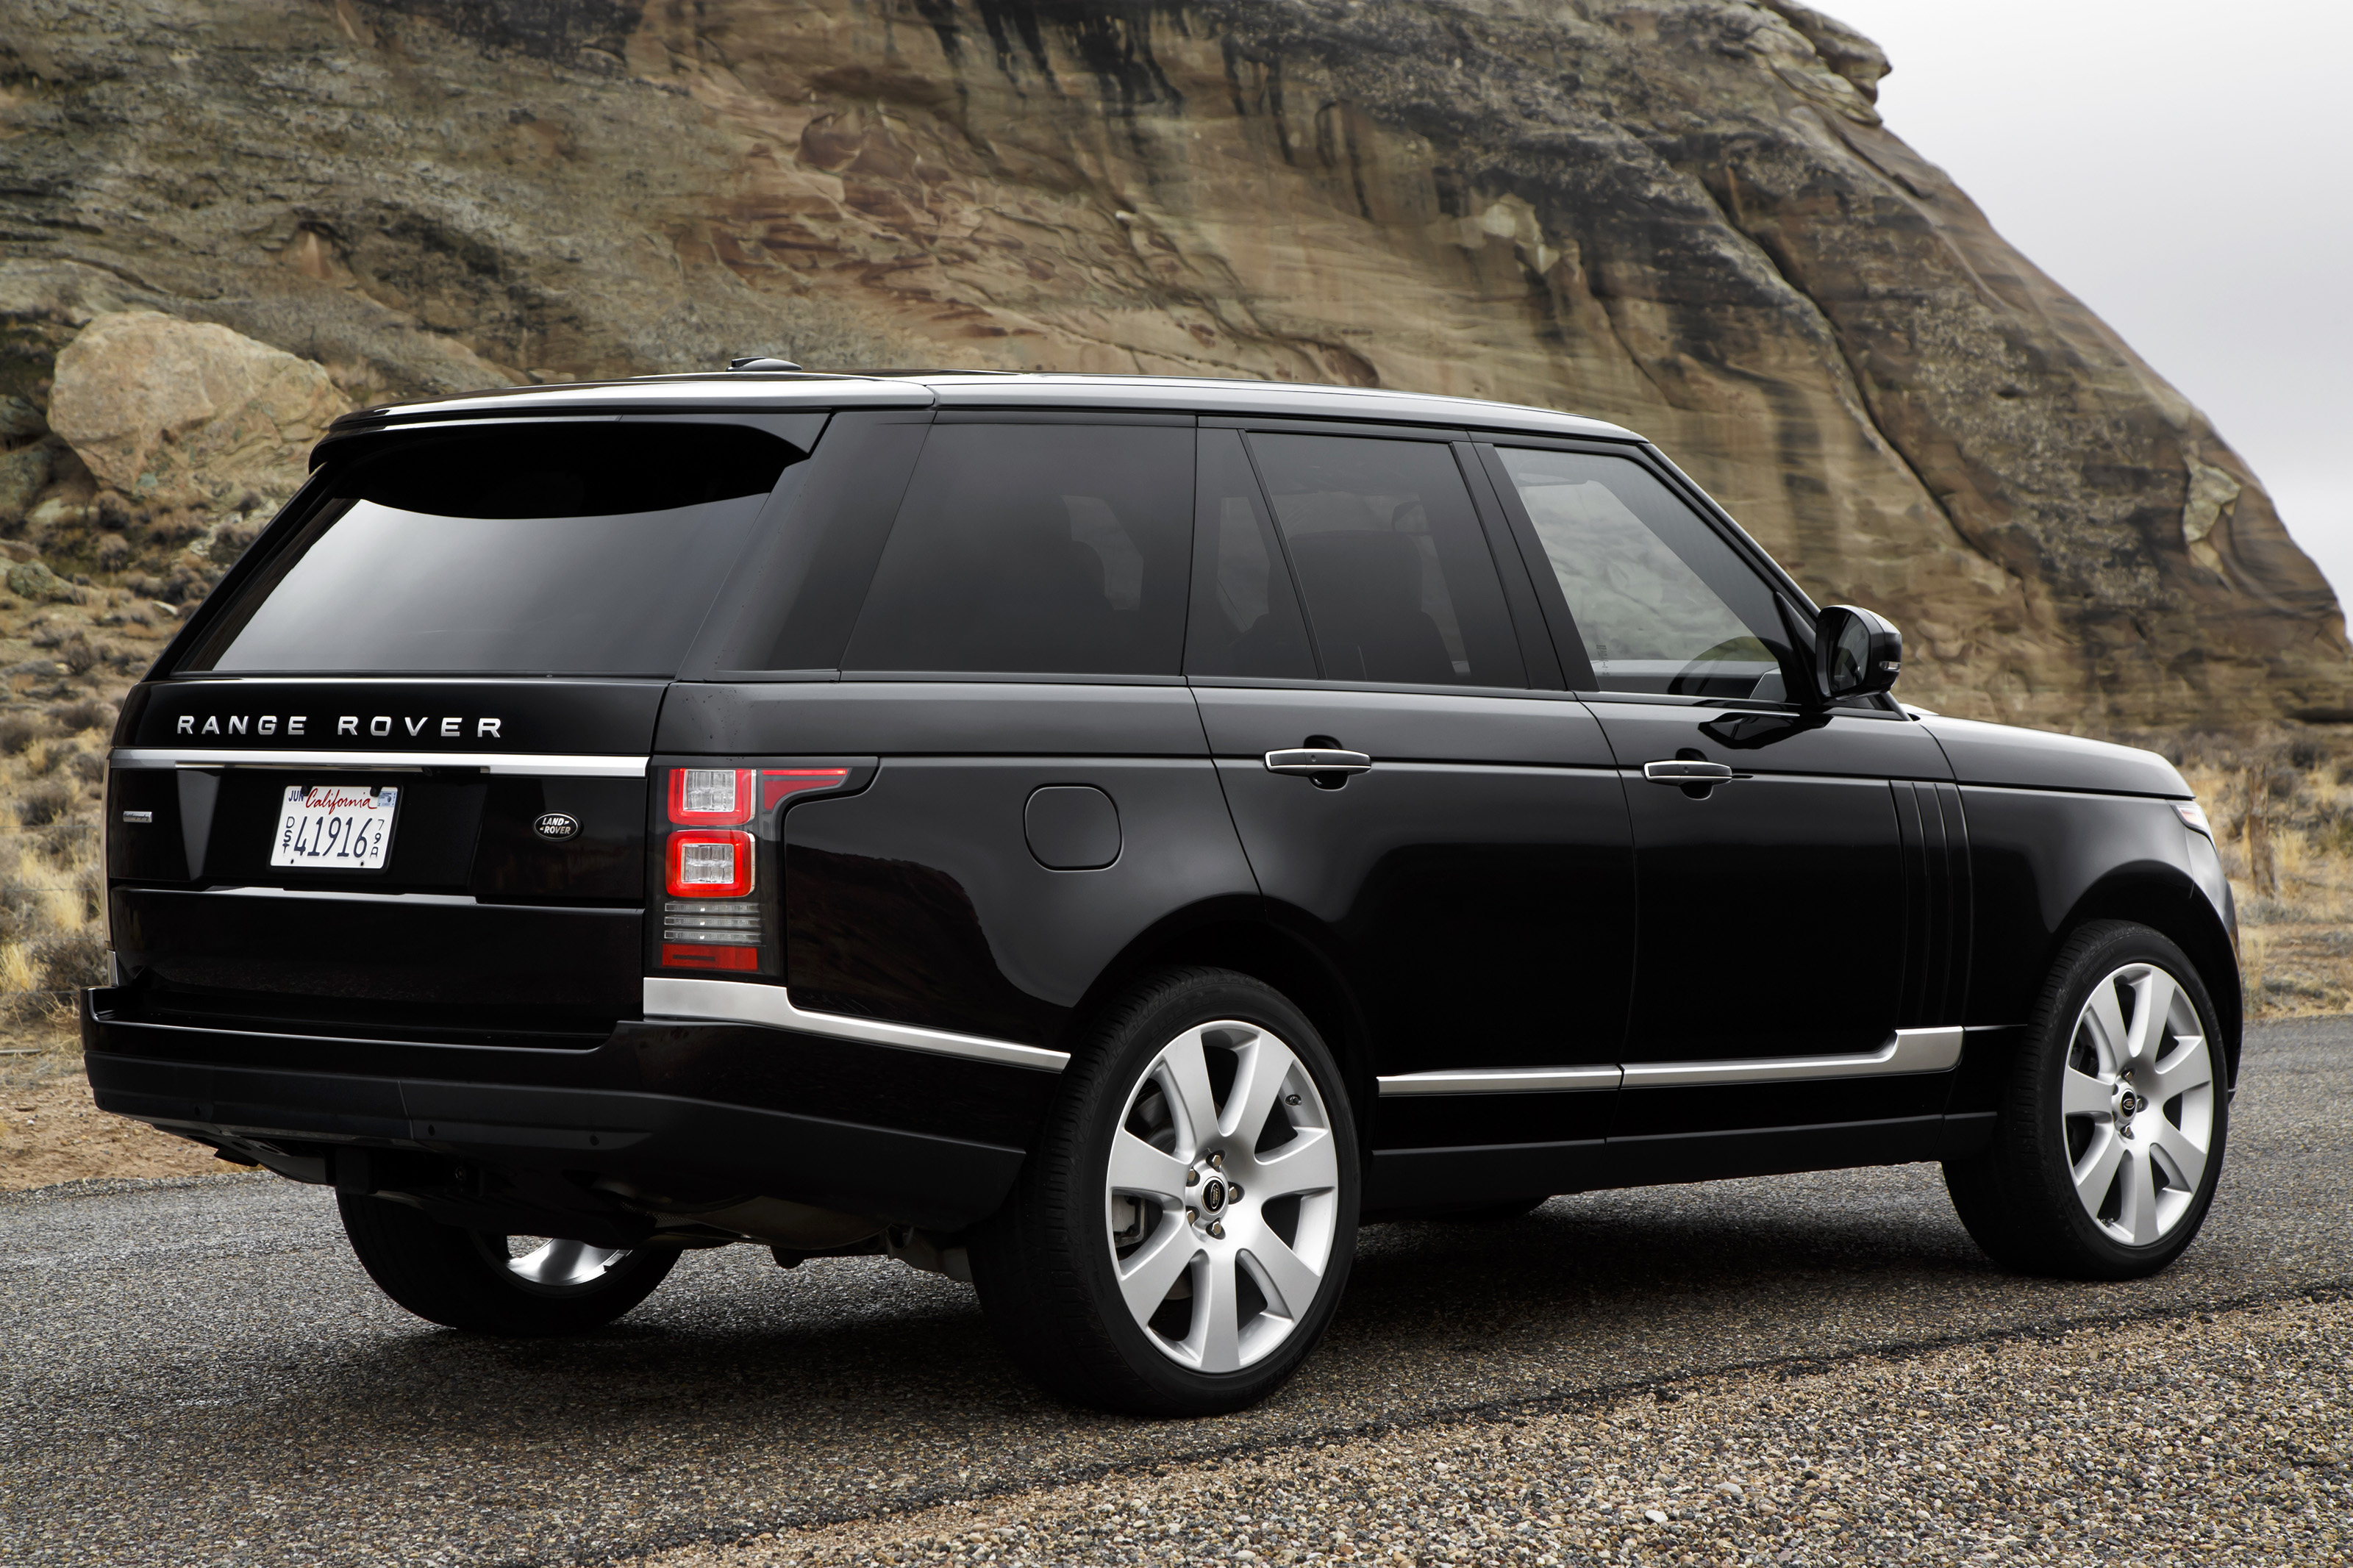 Up Close And Personal With The 2013 Range Rover